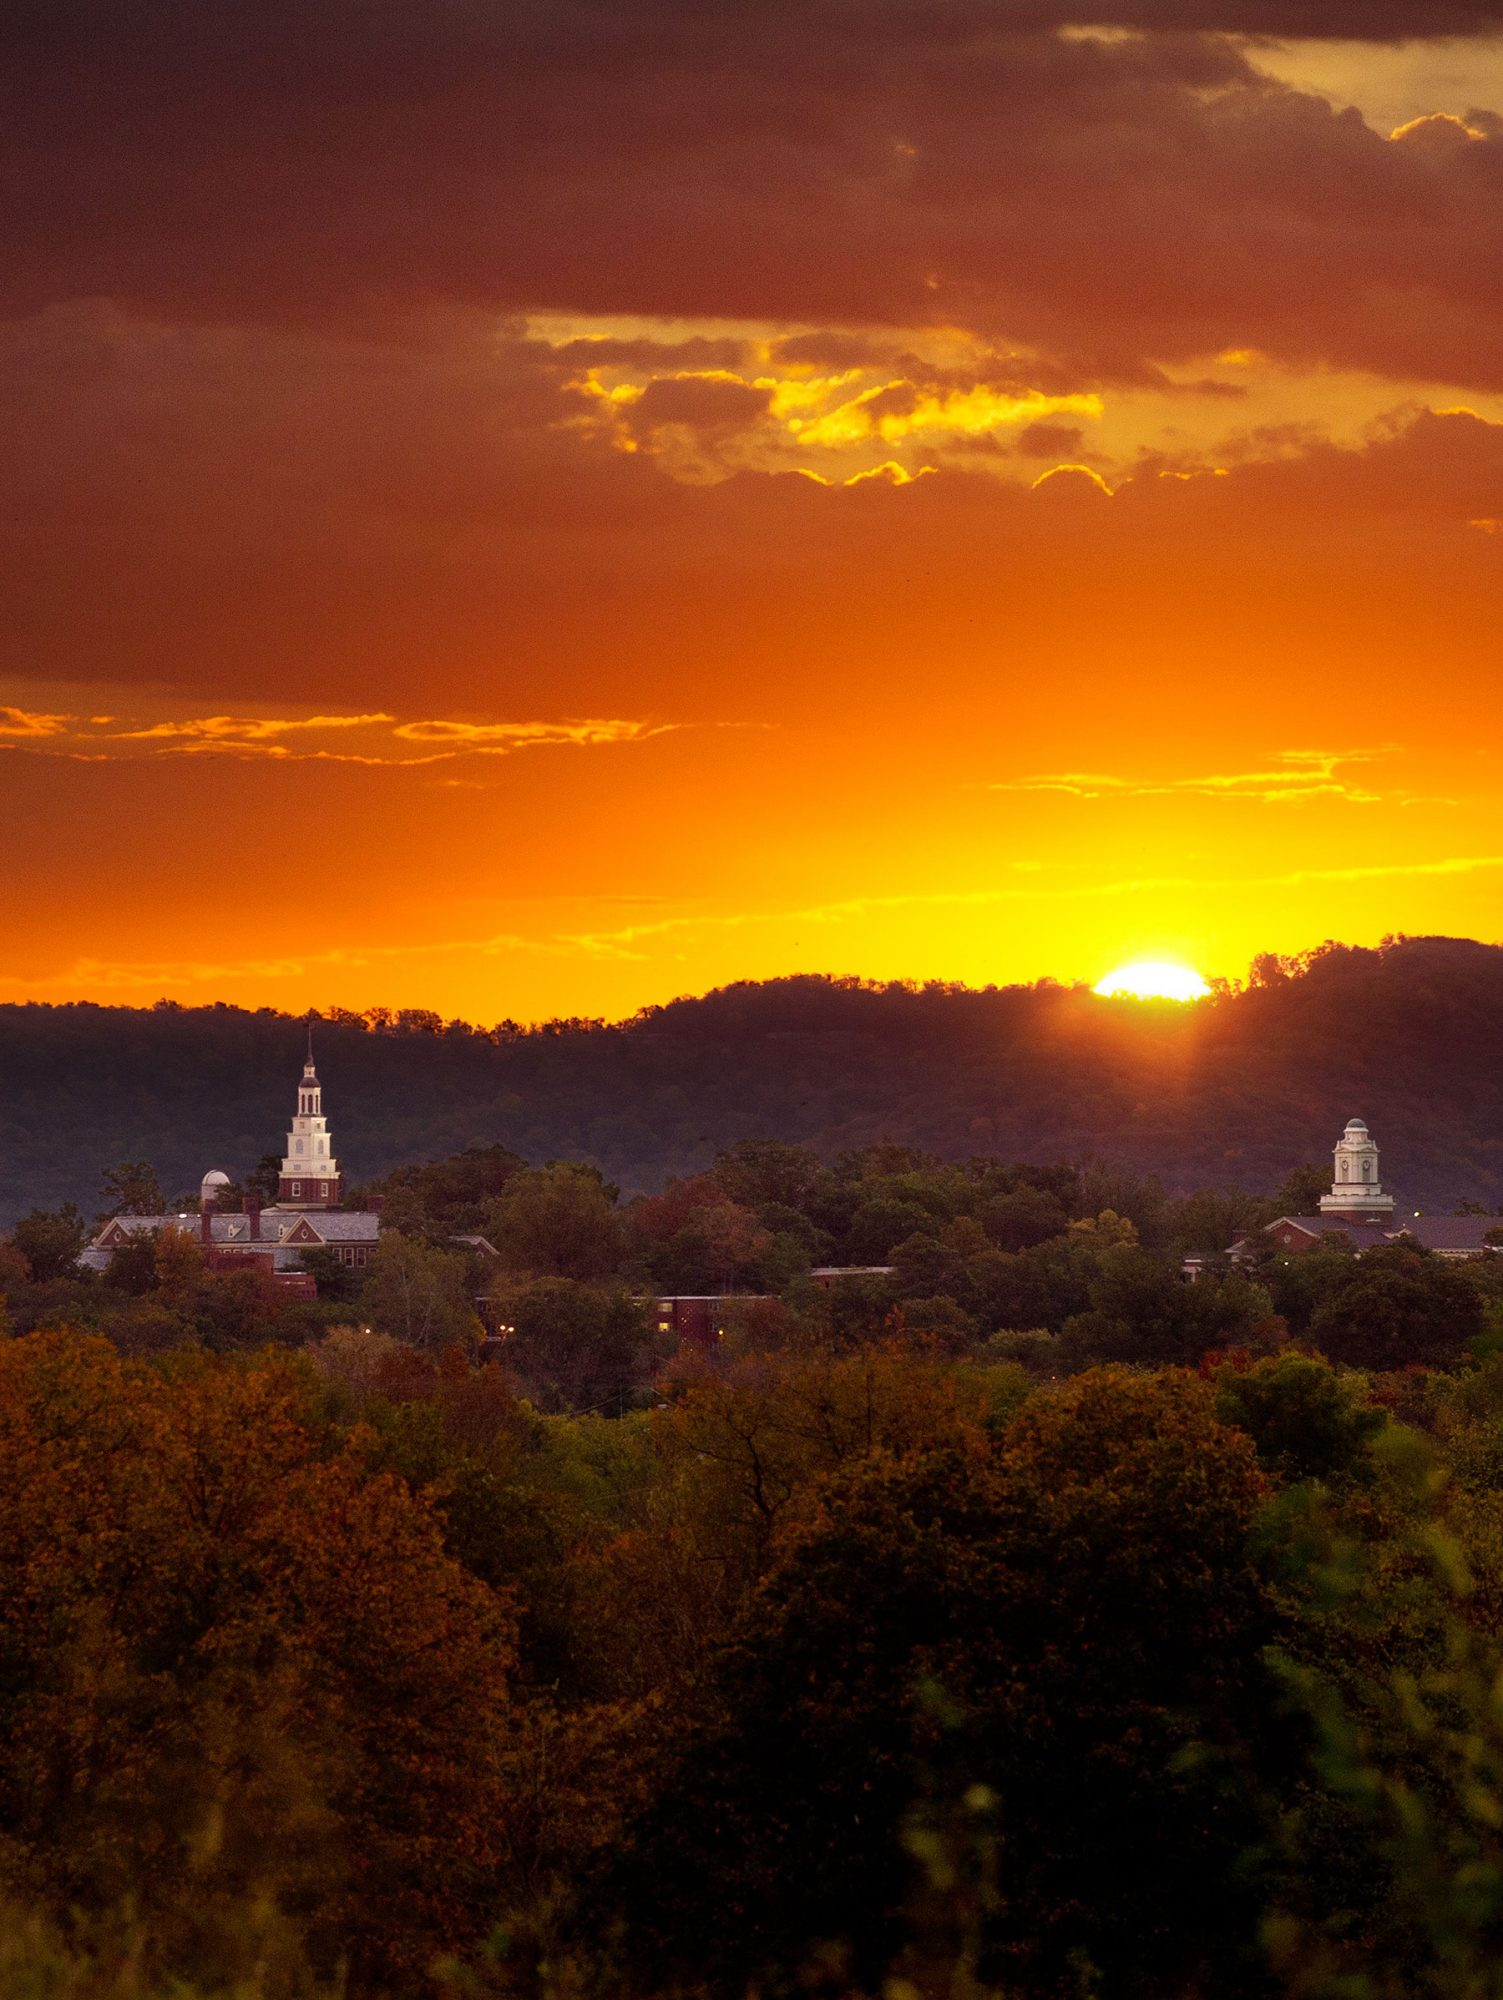 Berea College at Sunset